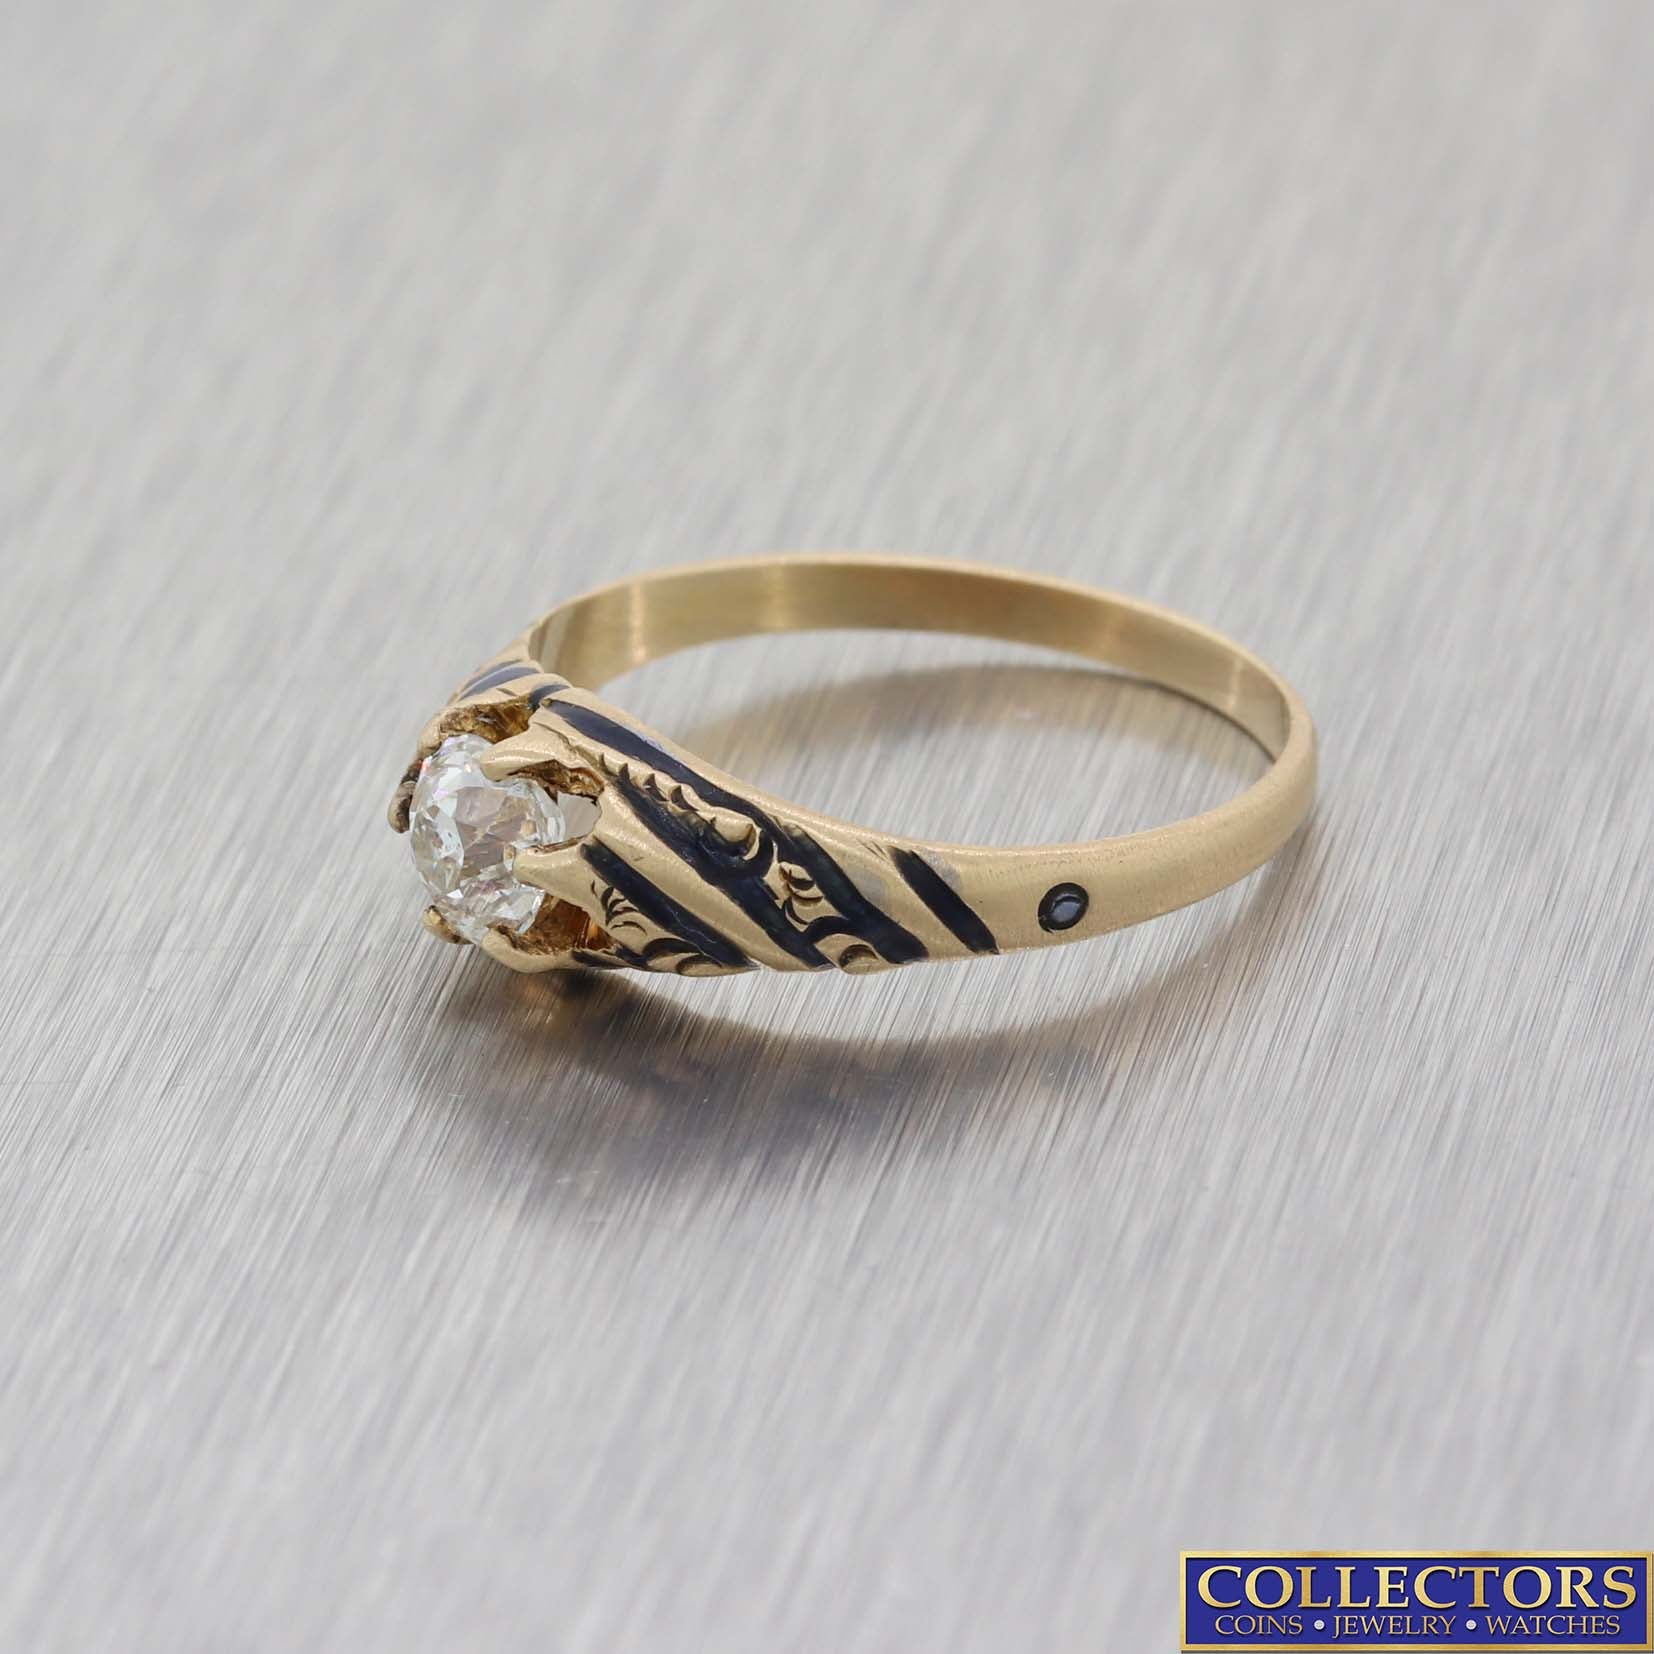 1880 Antique Victorian 14k Yellow Gold .51ct Diamond Enamel Engagement Ring EGL